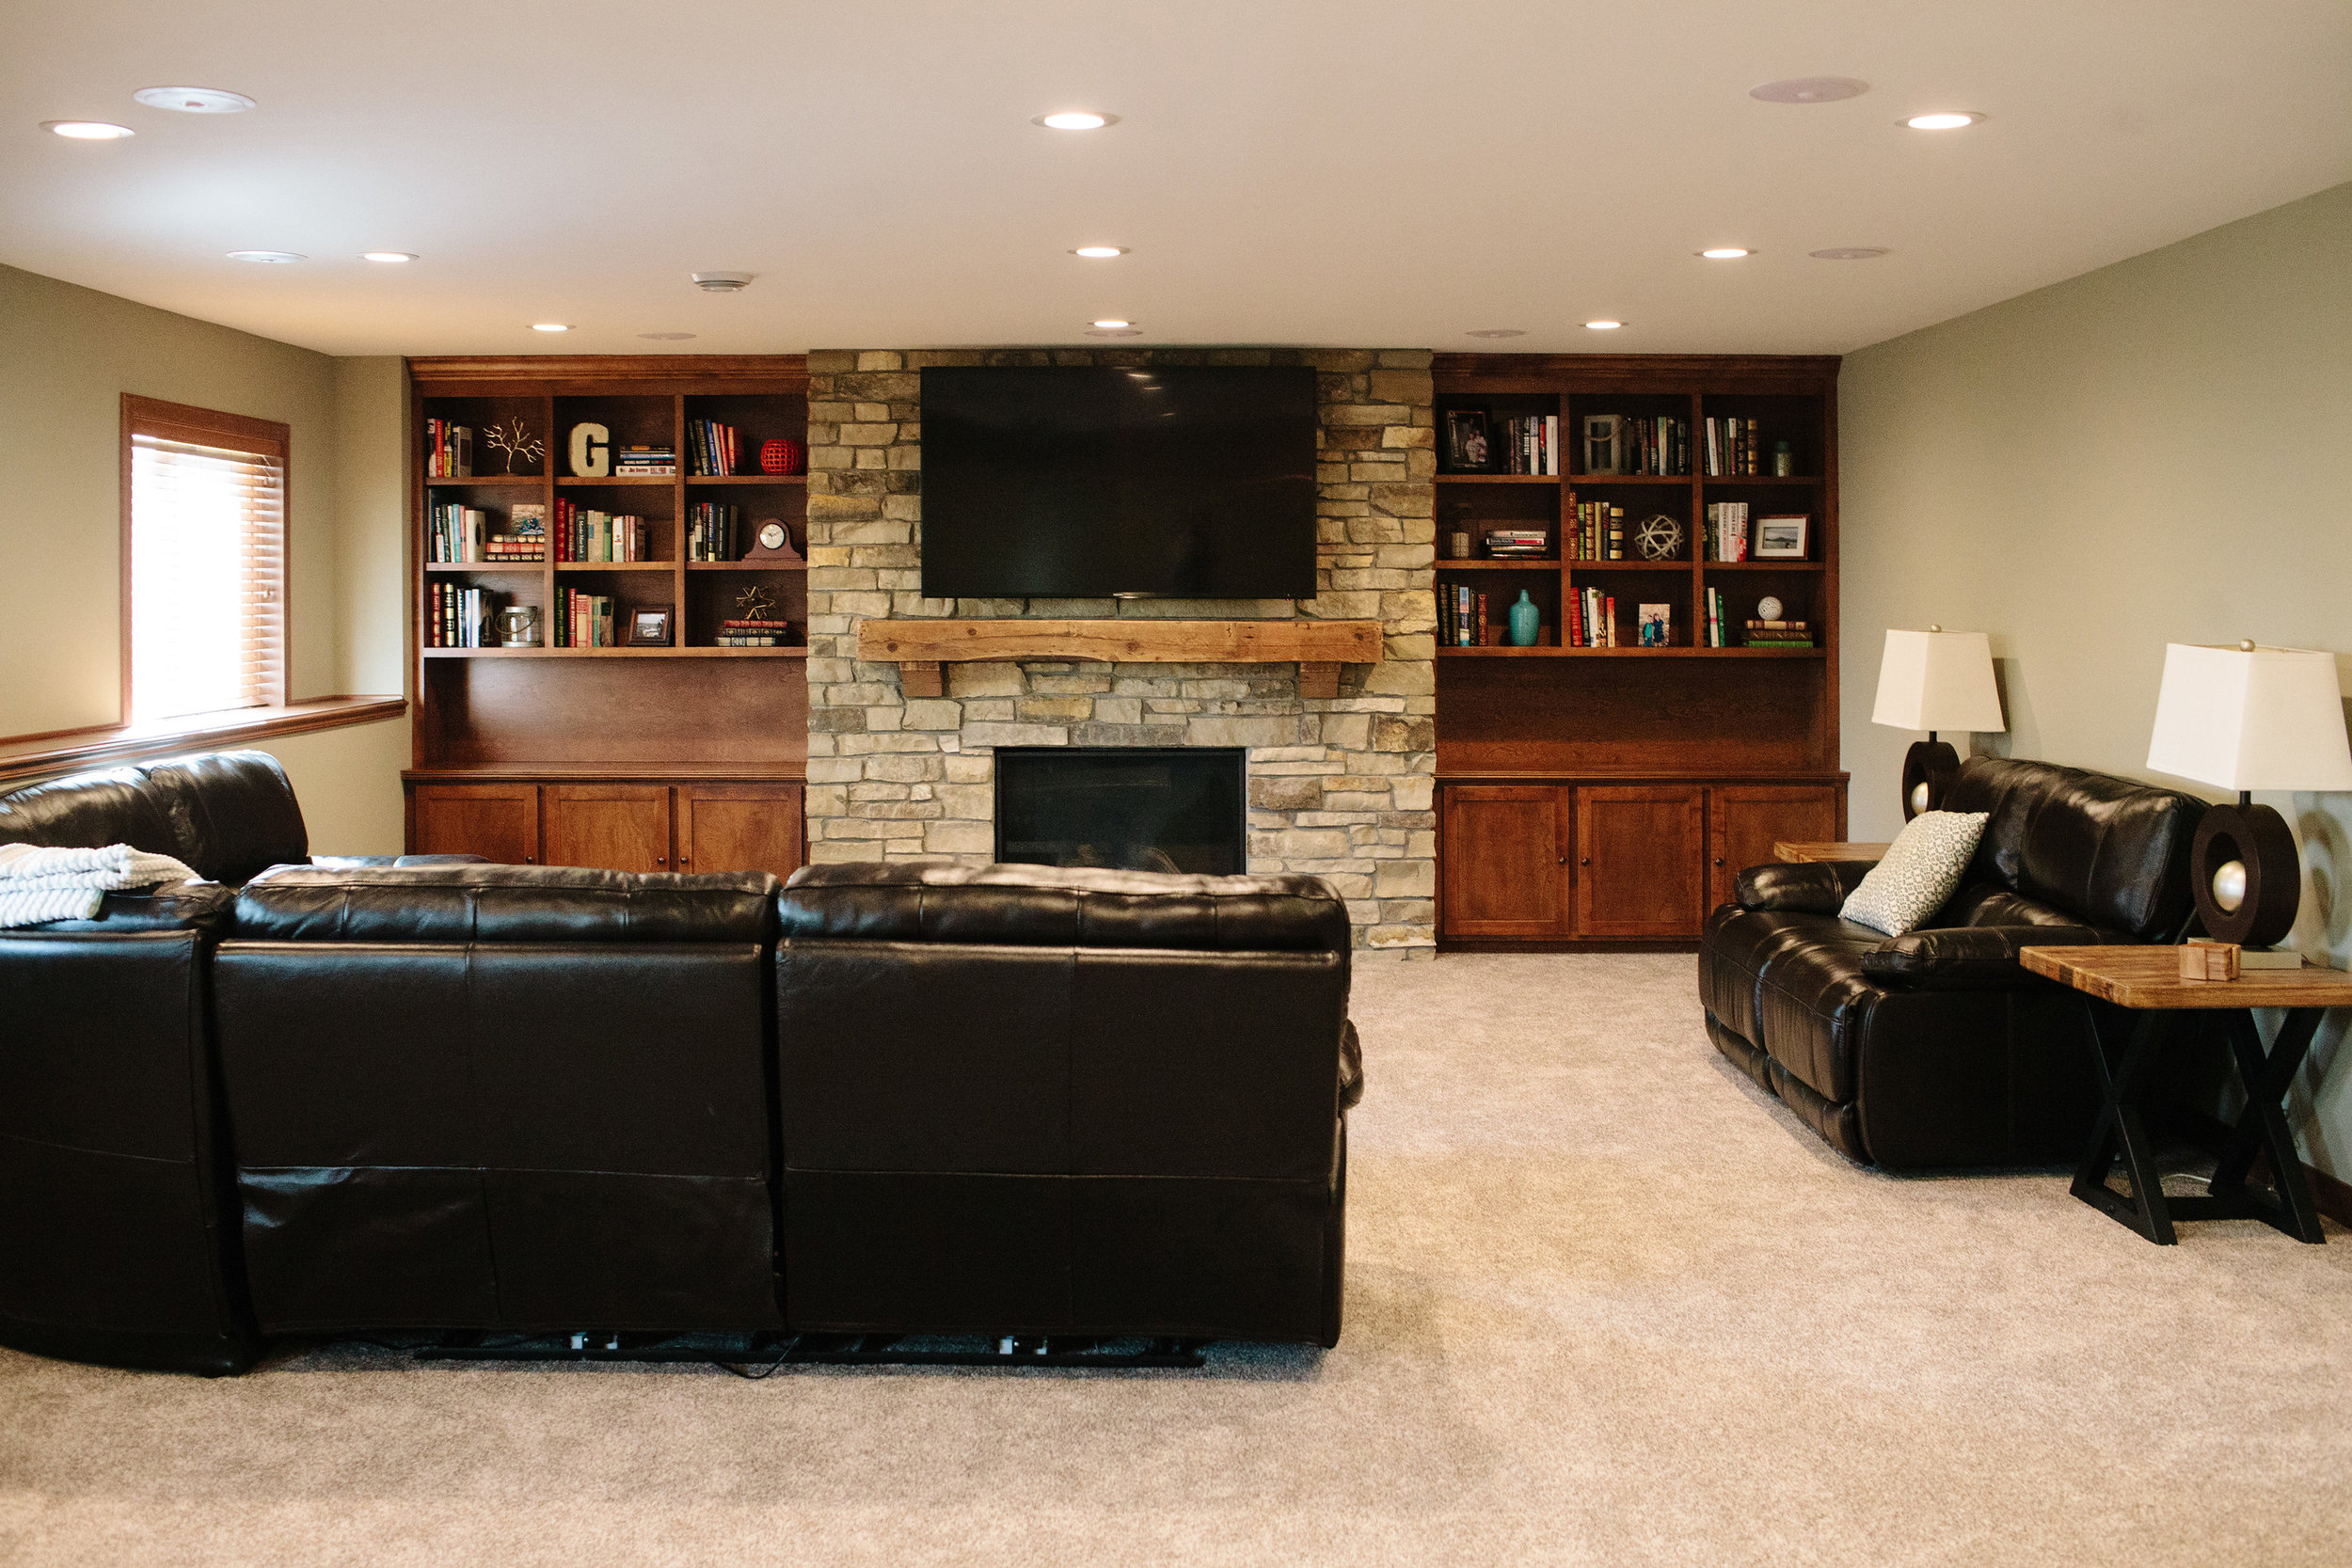 Andover basement renovation by Professio